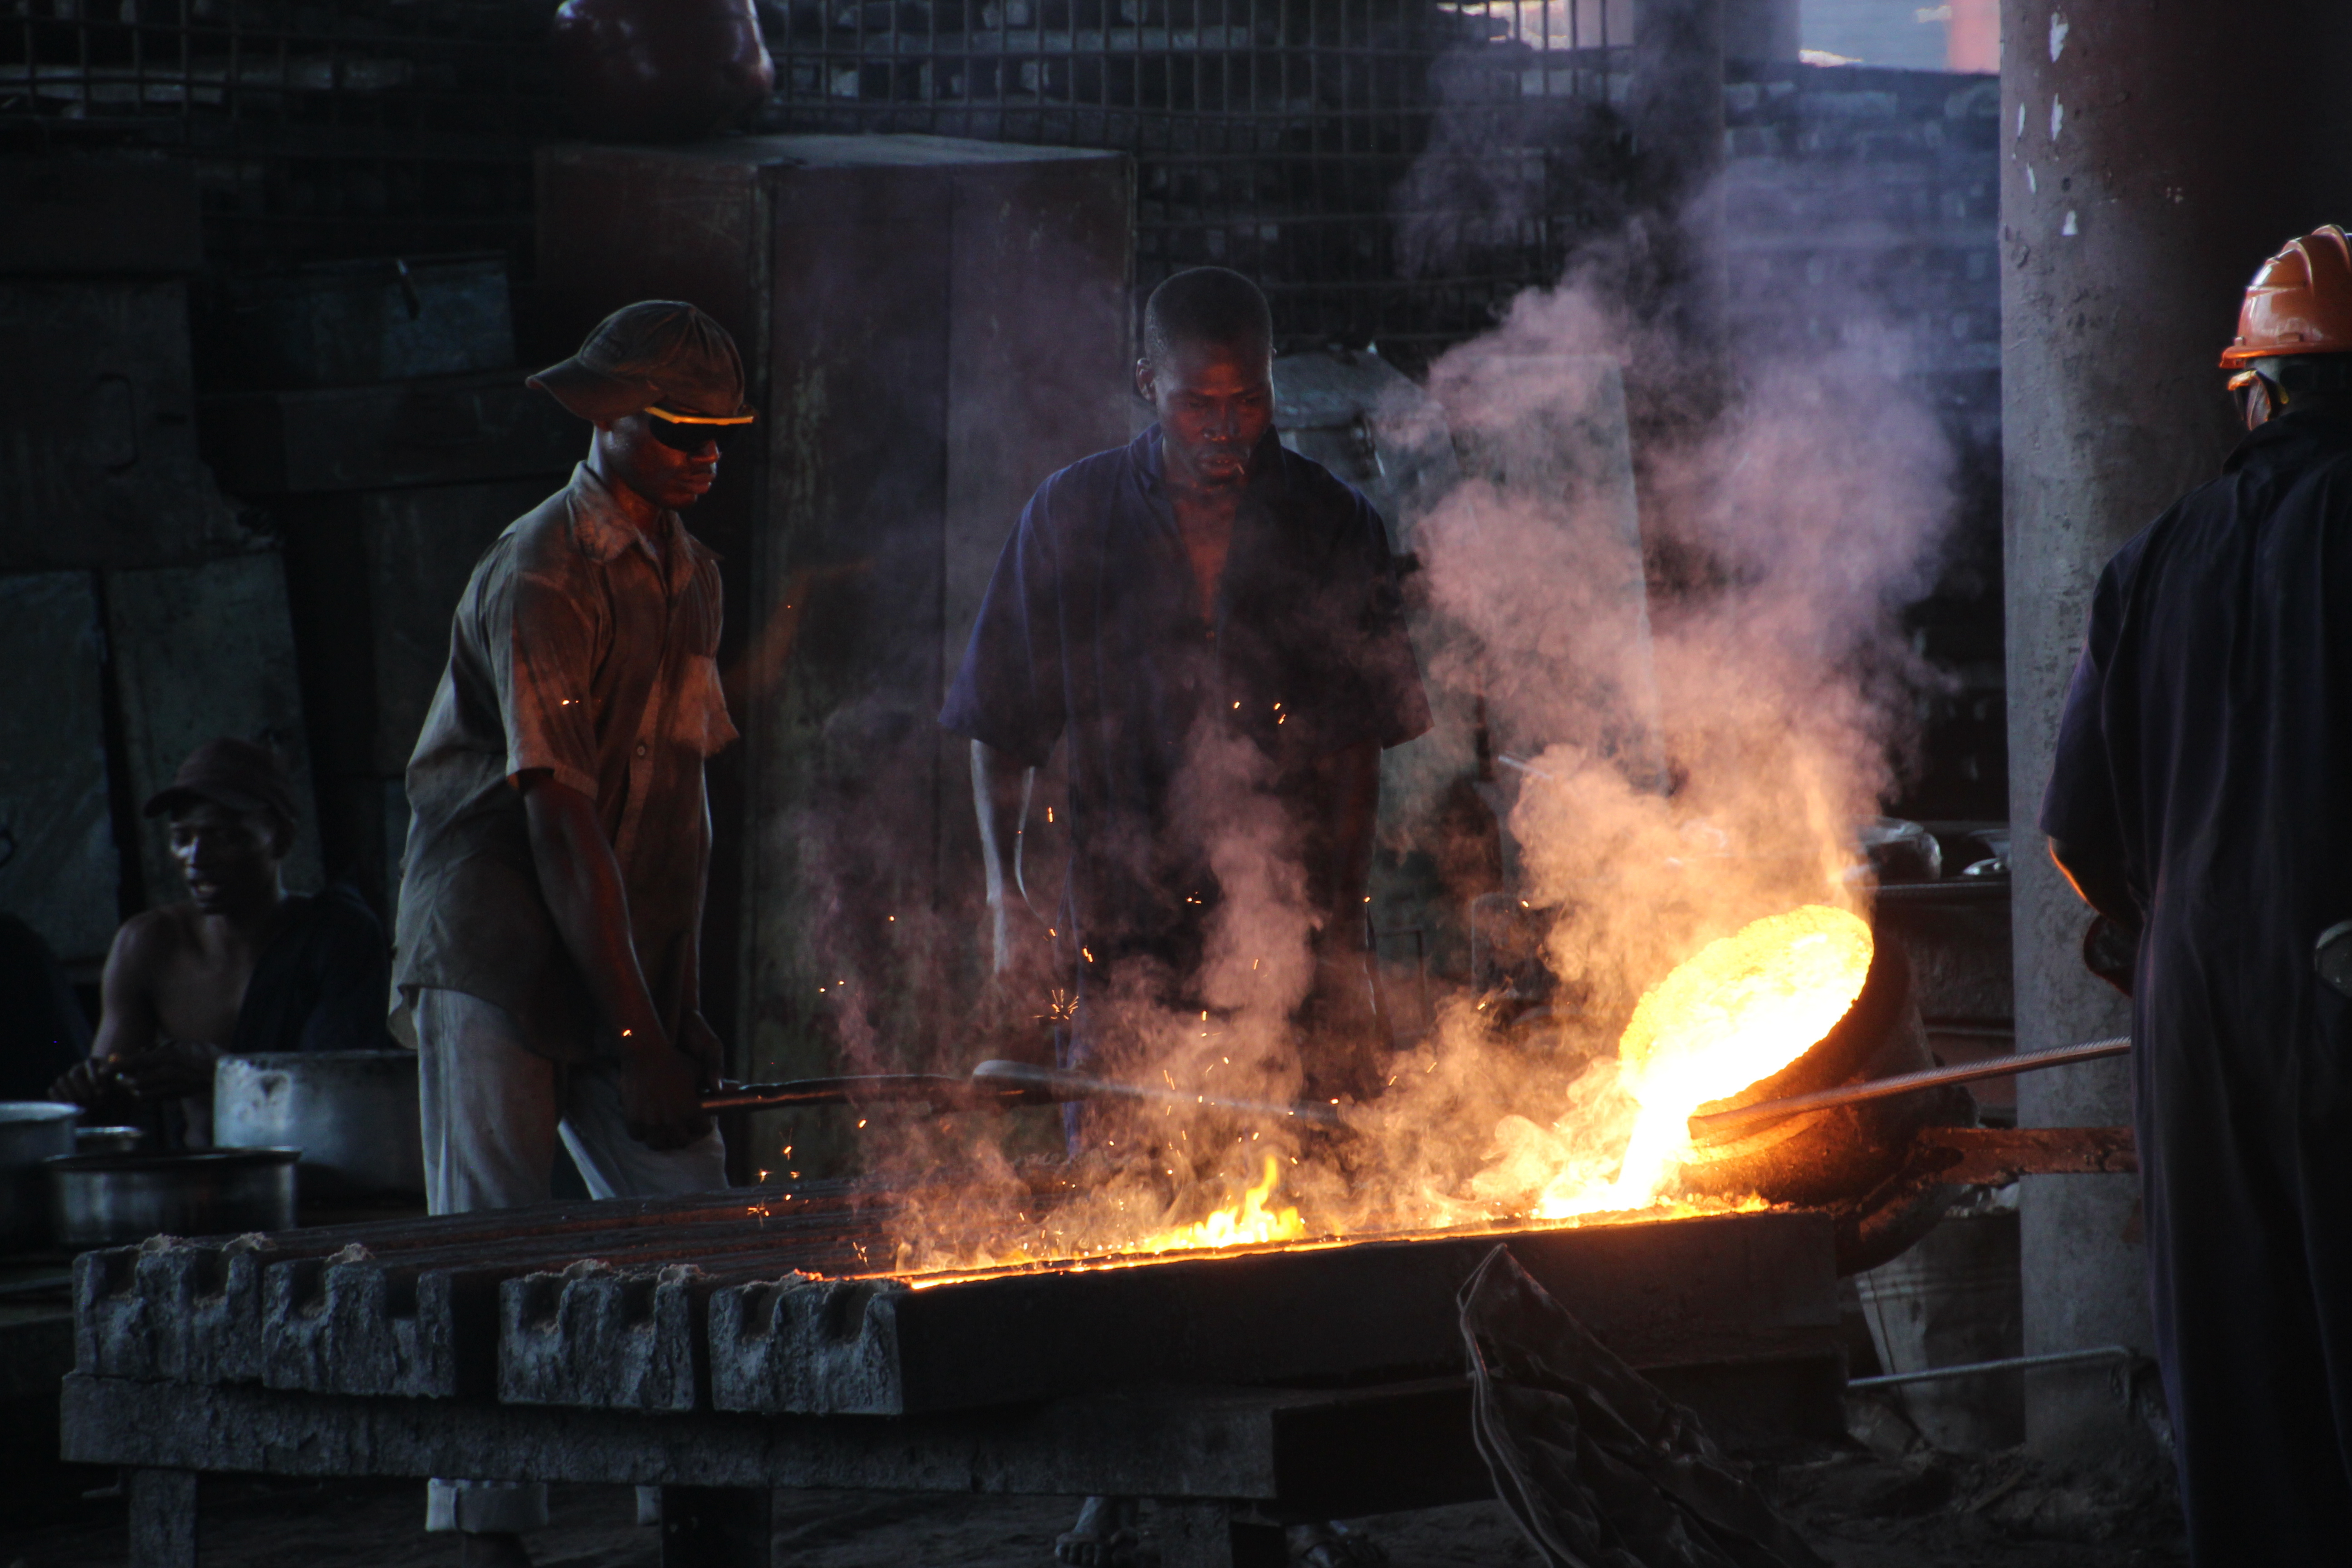 Workers in a smeltery